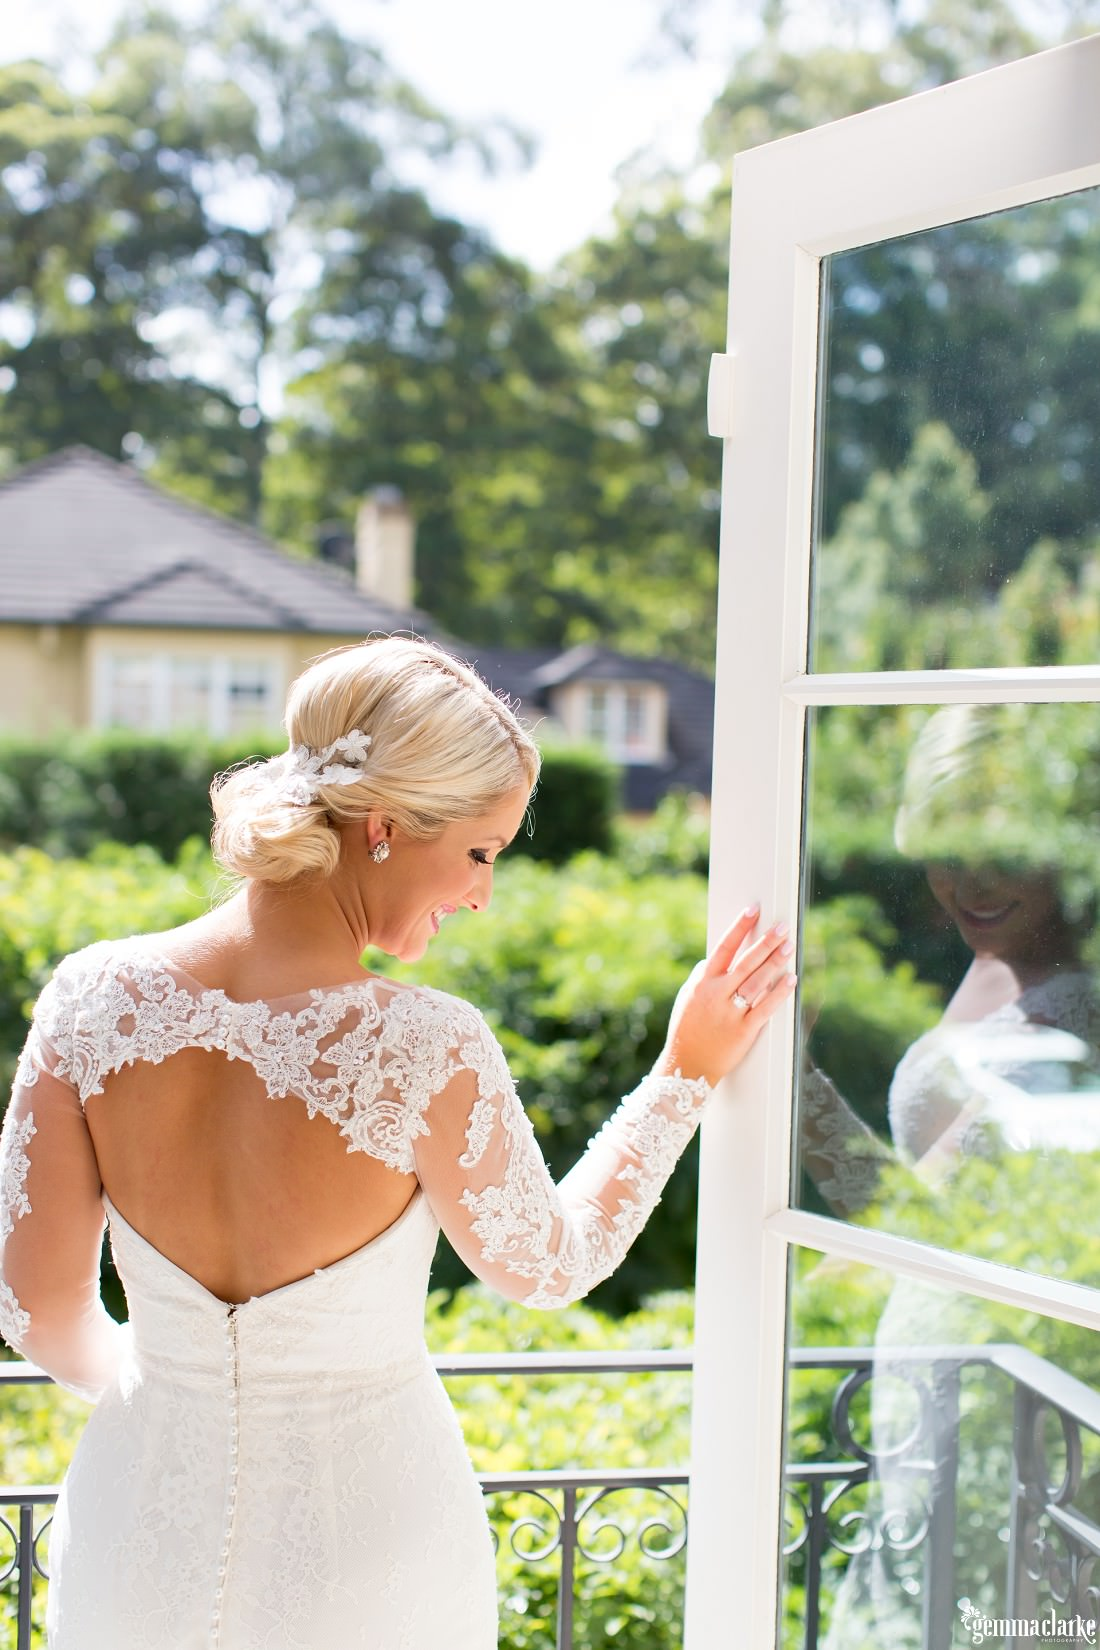 A bride in a lovely lacy wedding dress with her hand on a door looking back over her shoulder